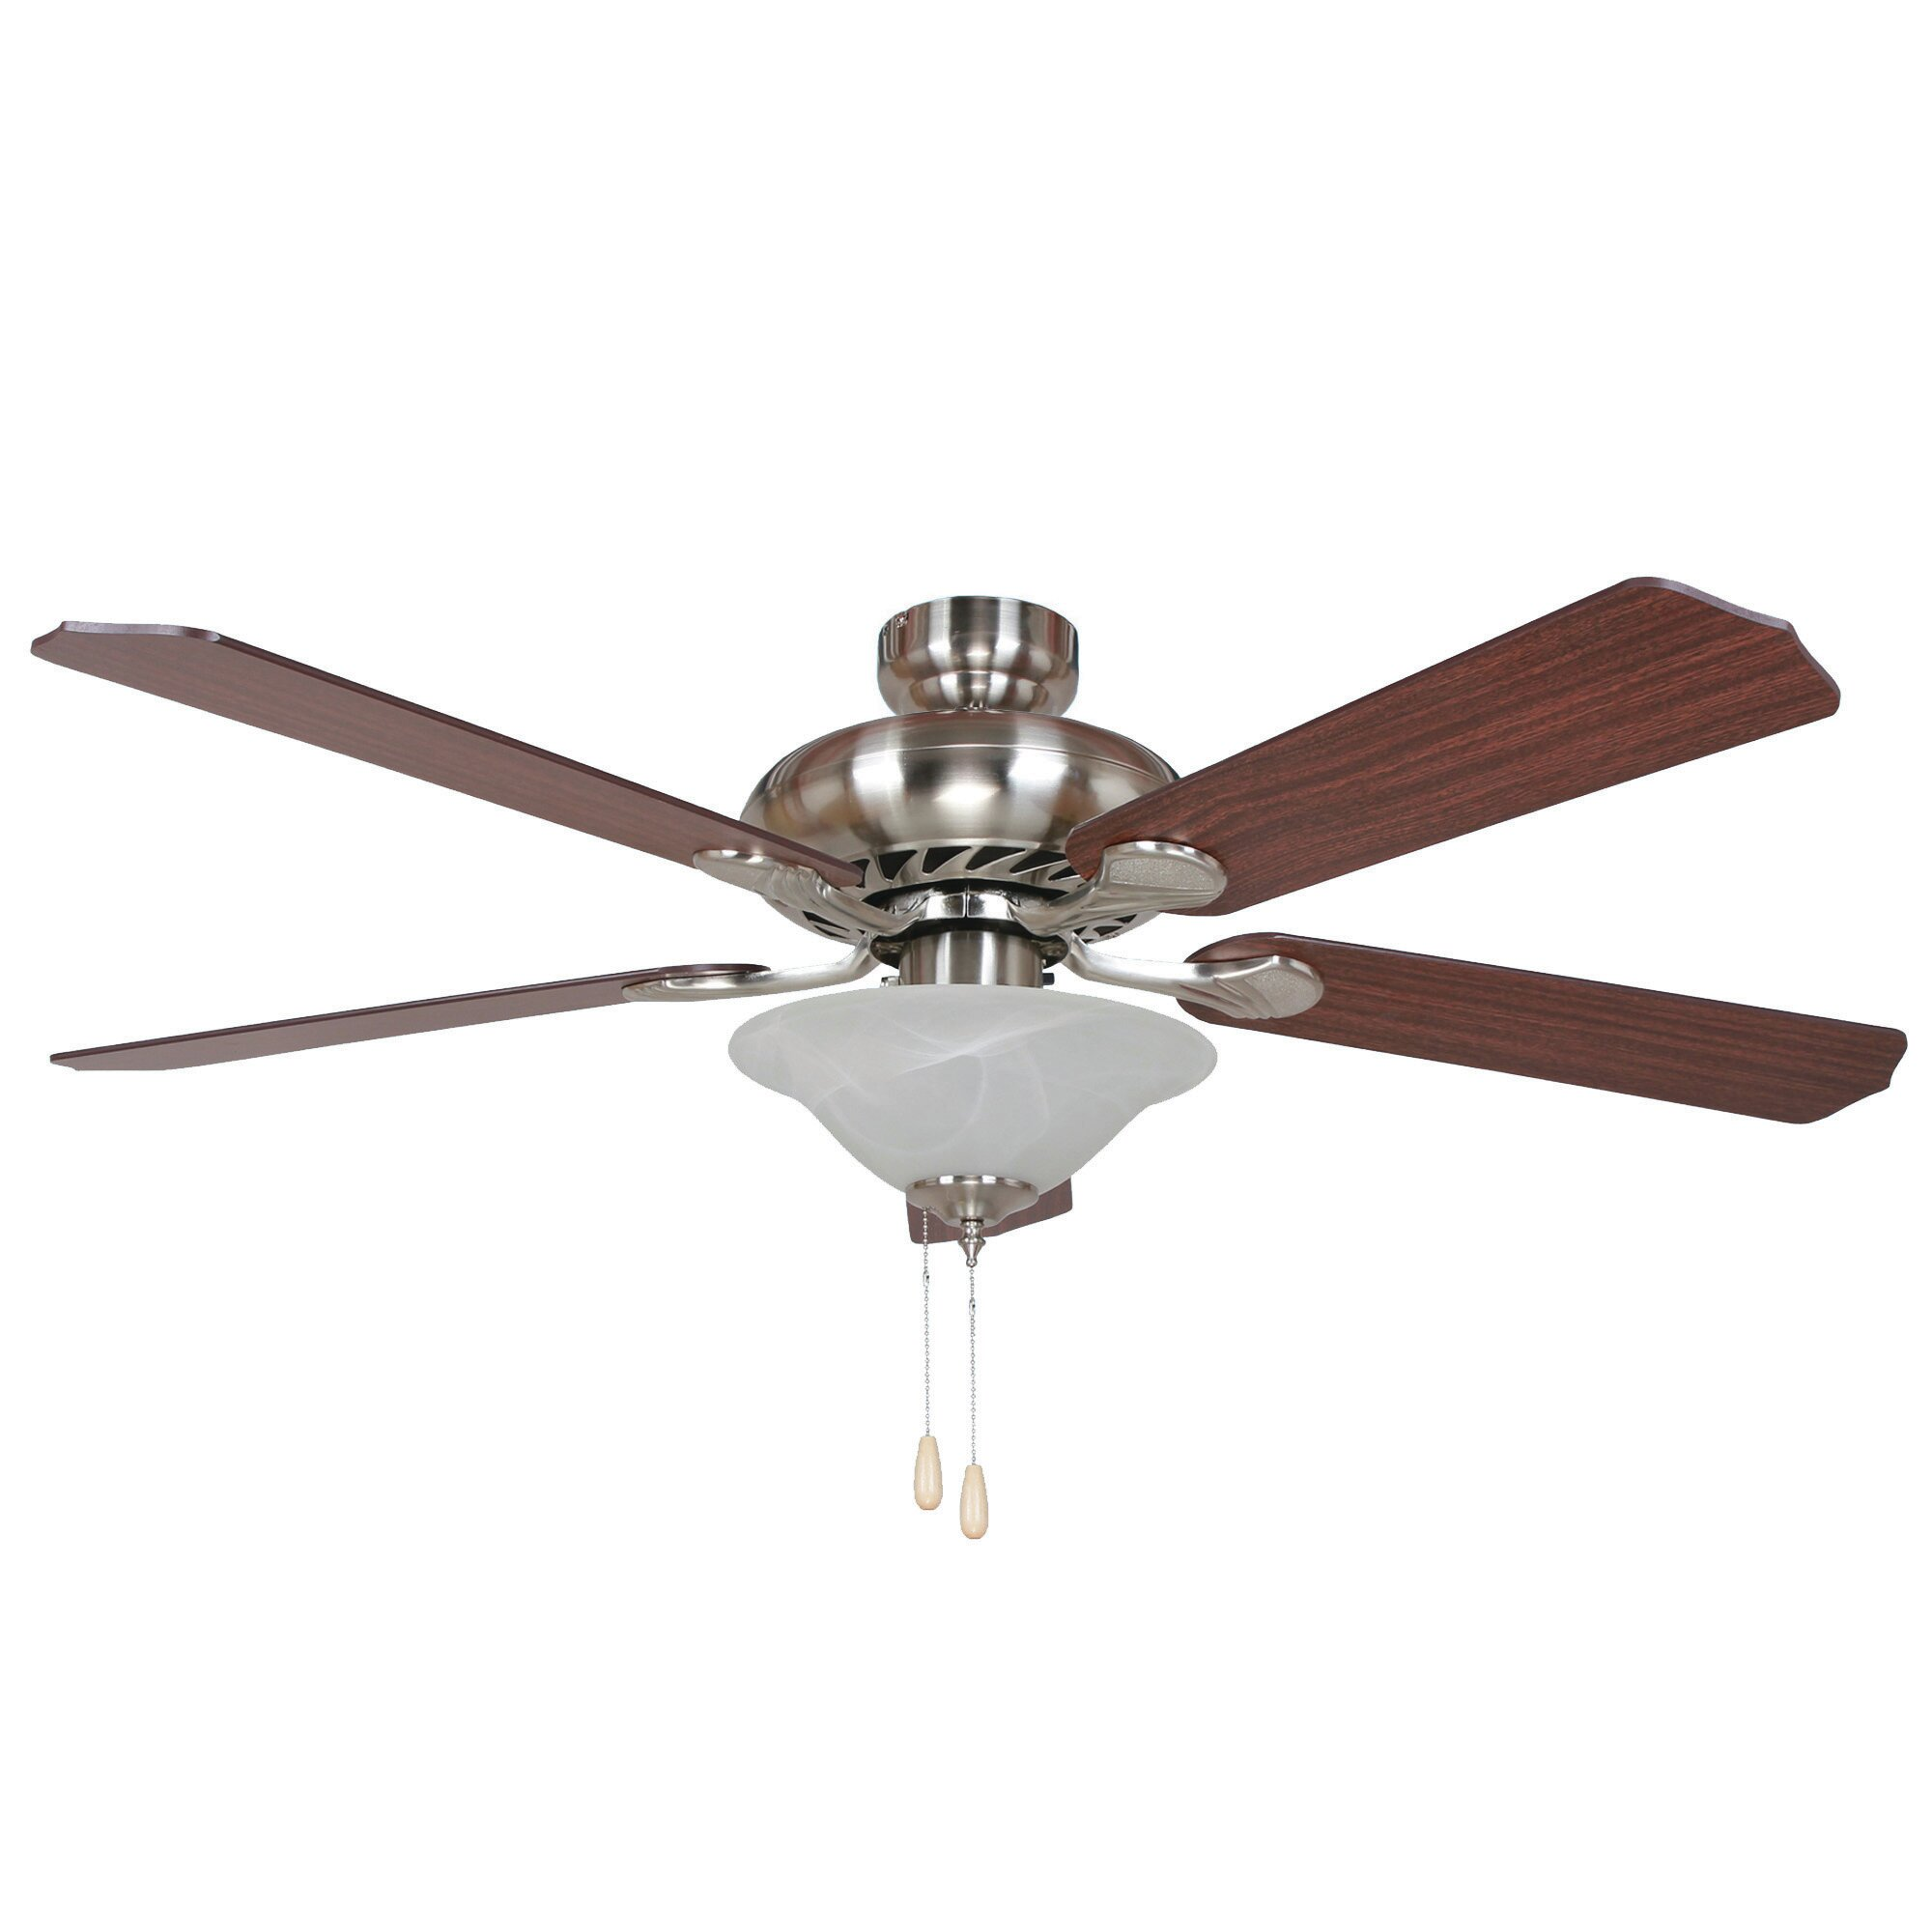 Yosemite home decor 52 whitney 5 blade ceiling fan for Home decorations fan